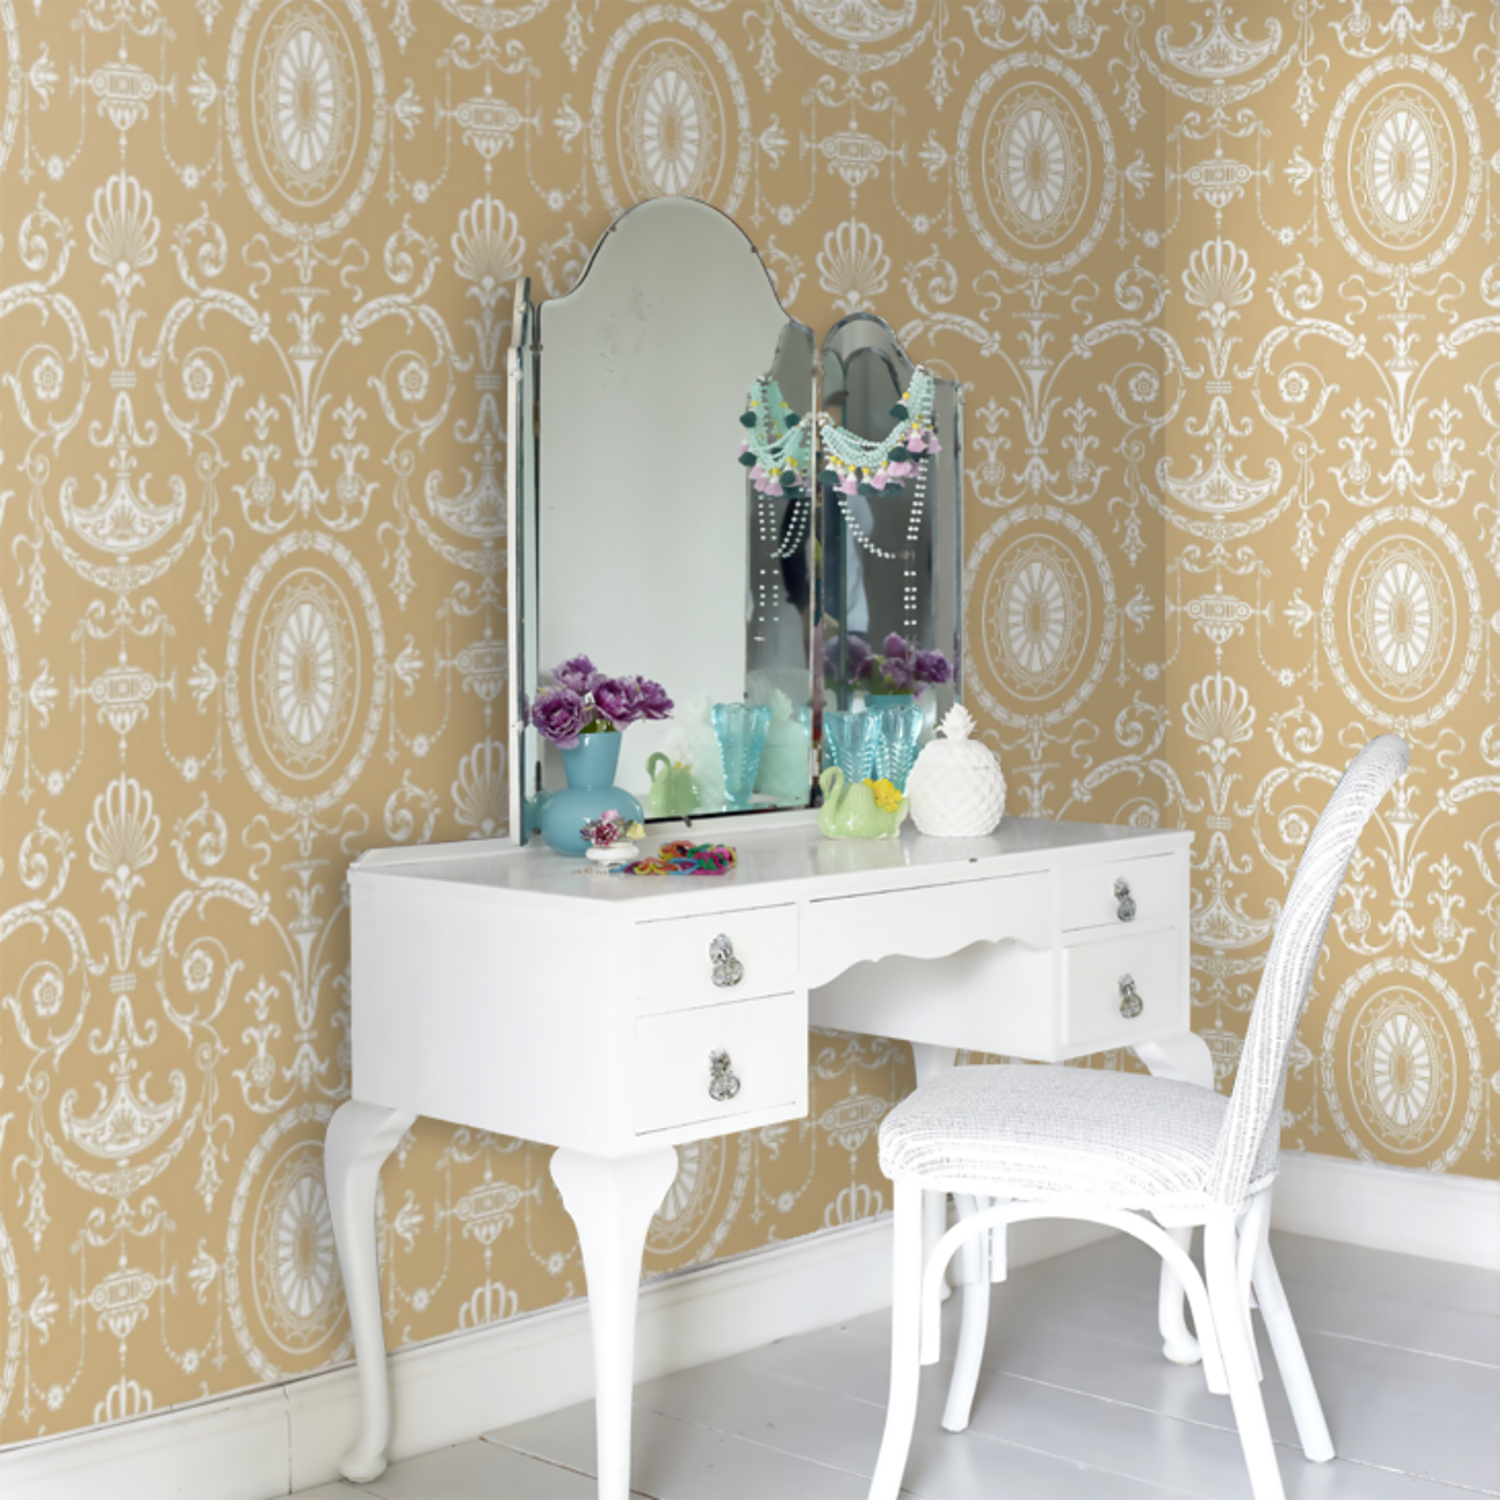 Little Greene PALL MALL - VERMEER - De